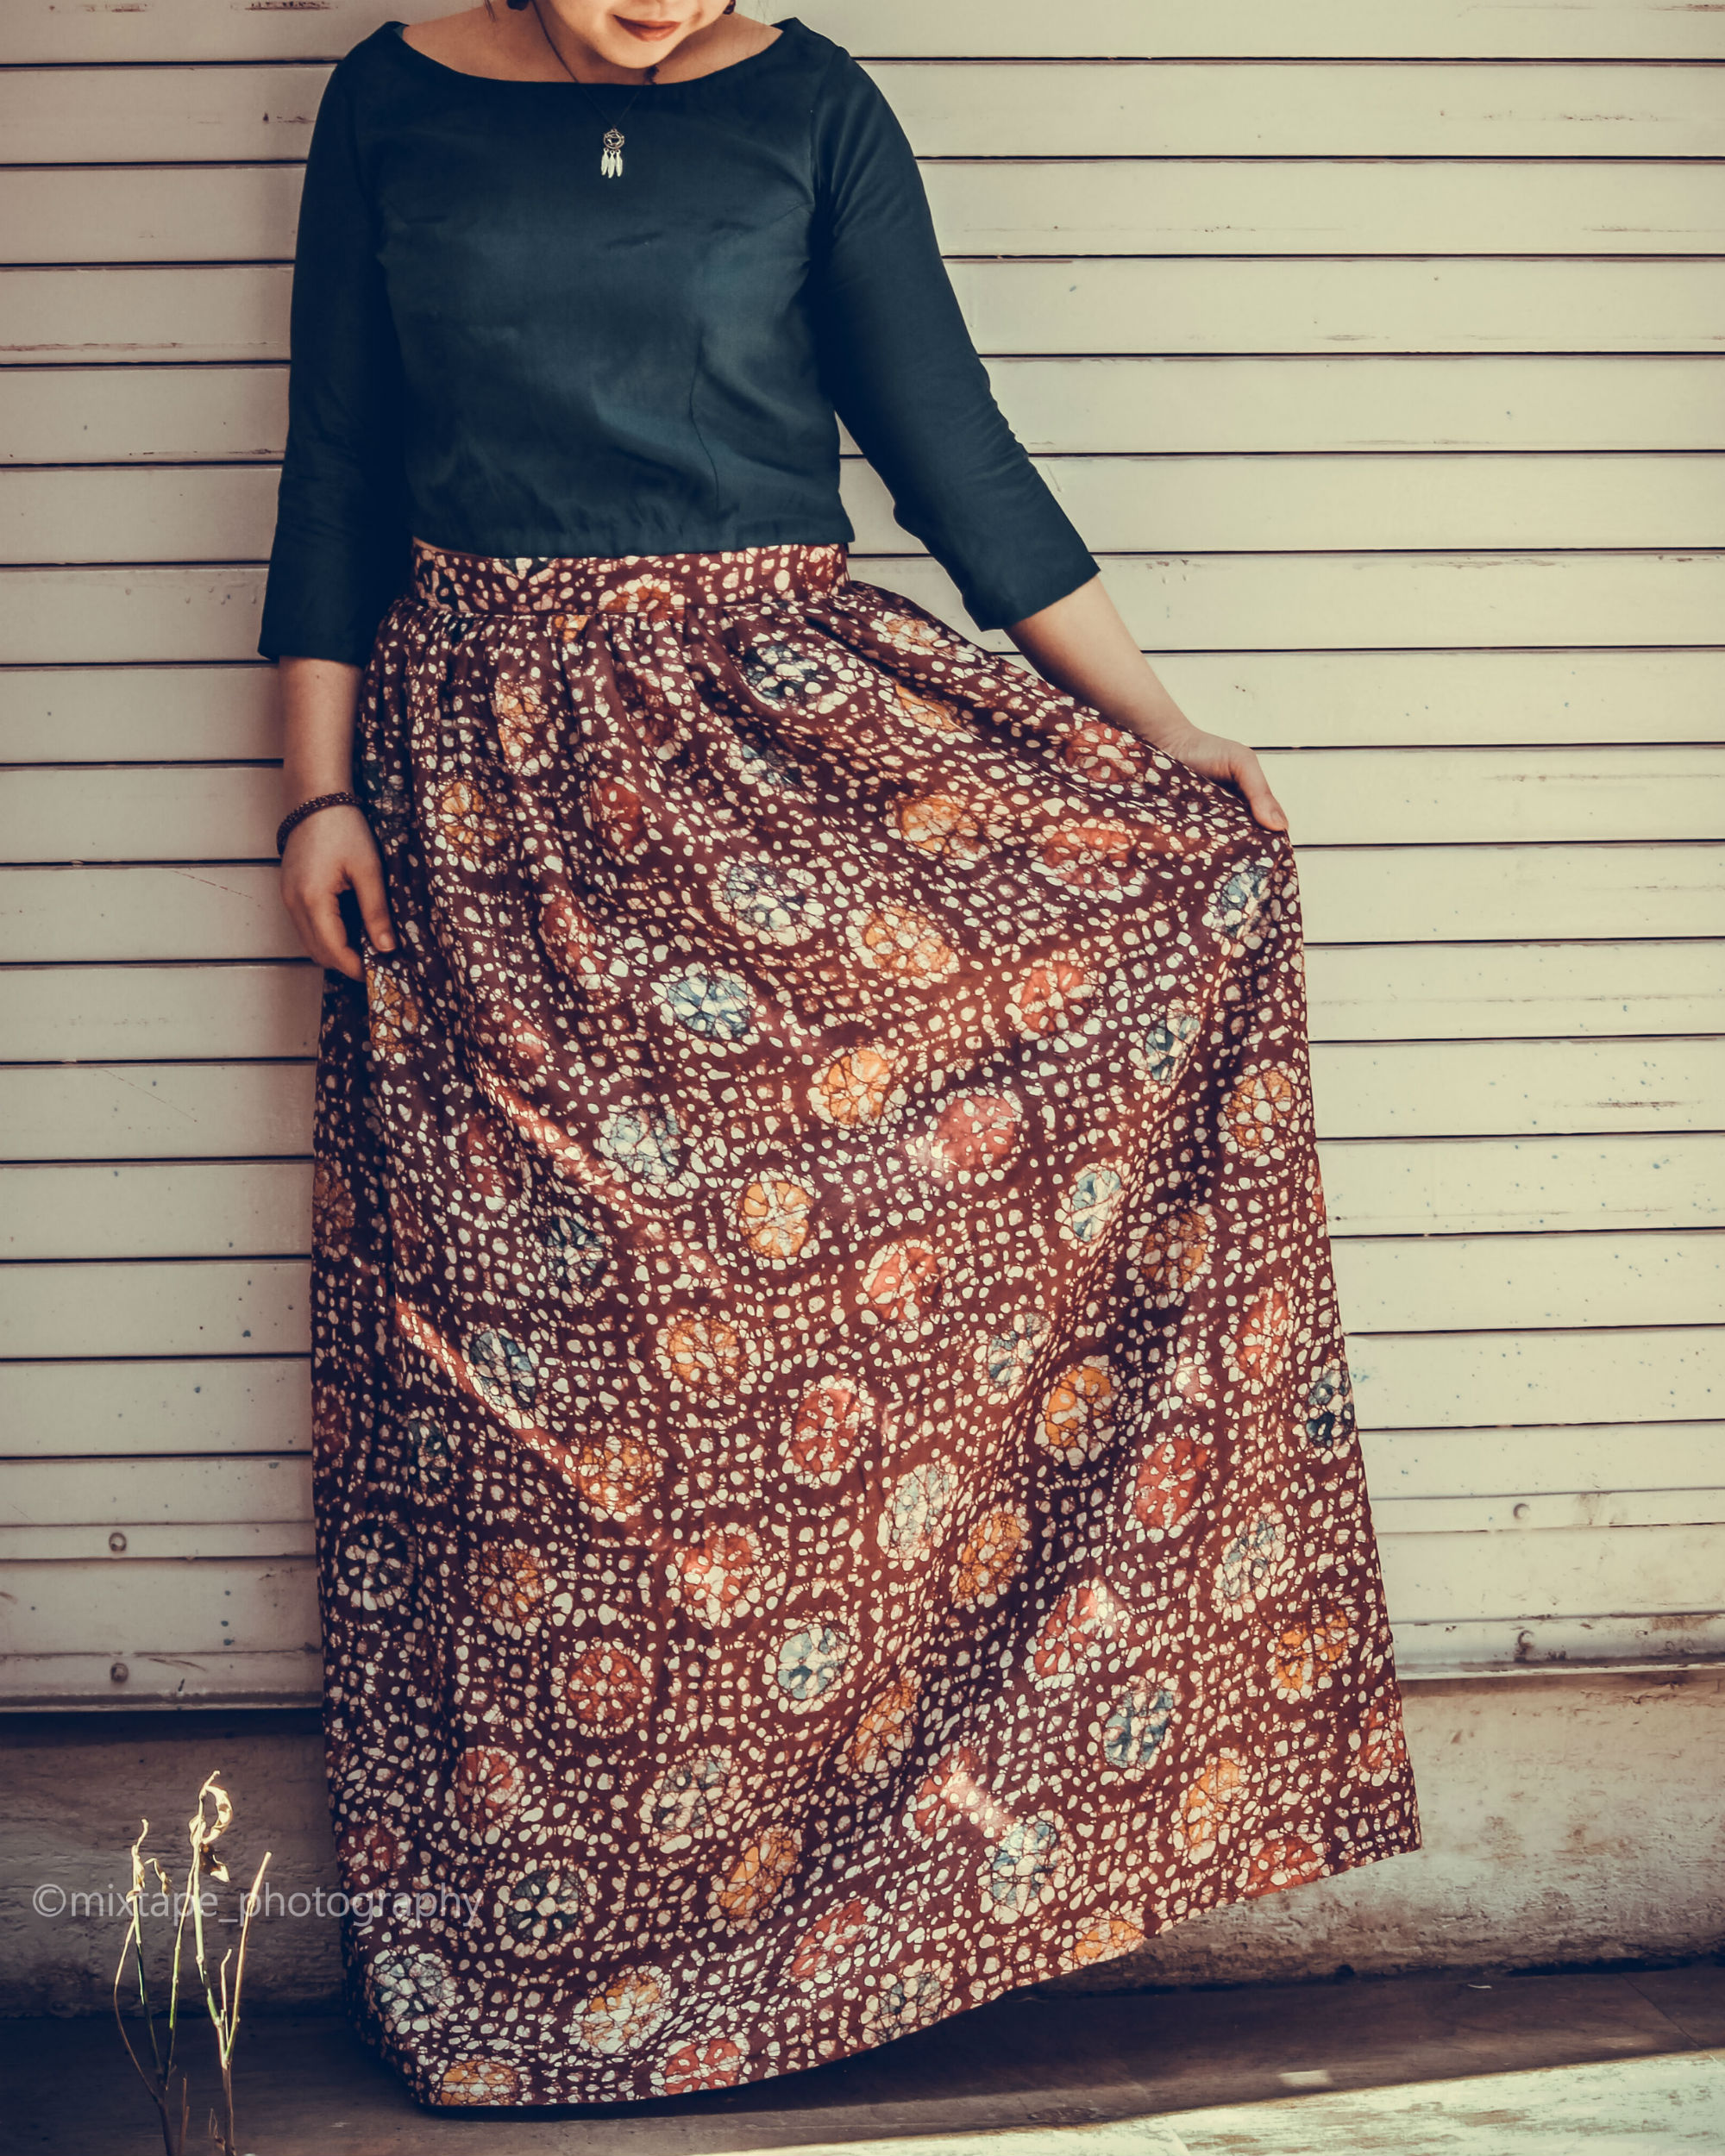 Teal top with batik coffee skirt